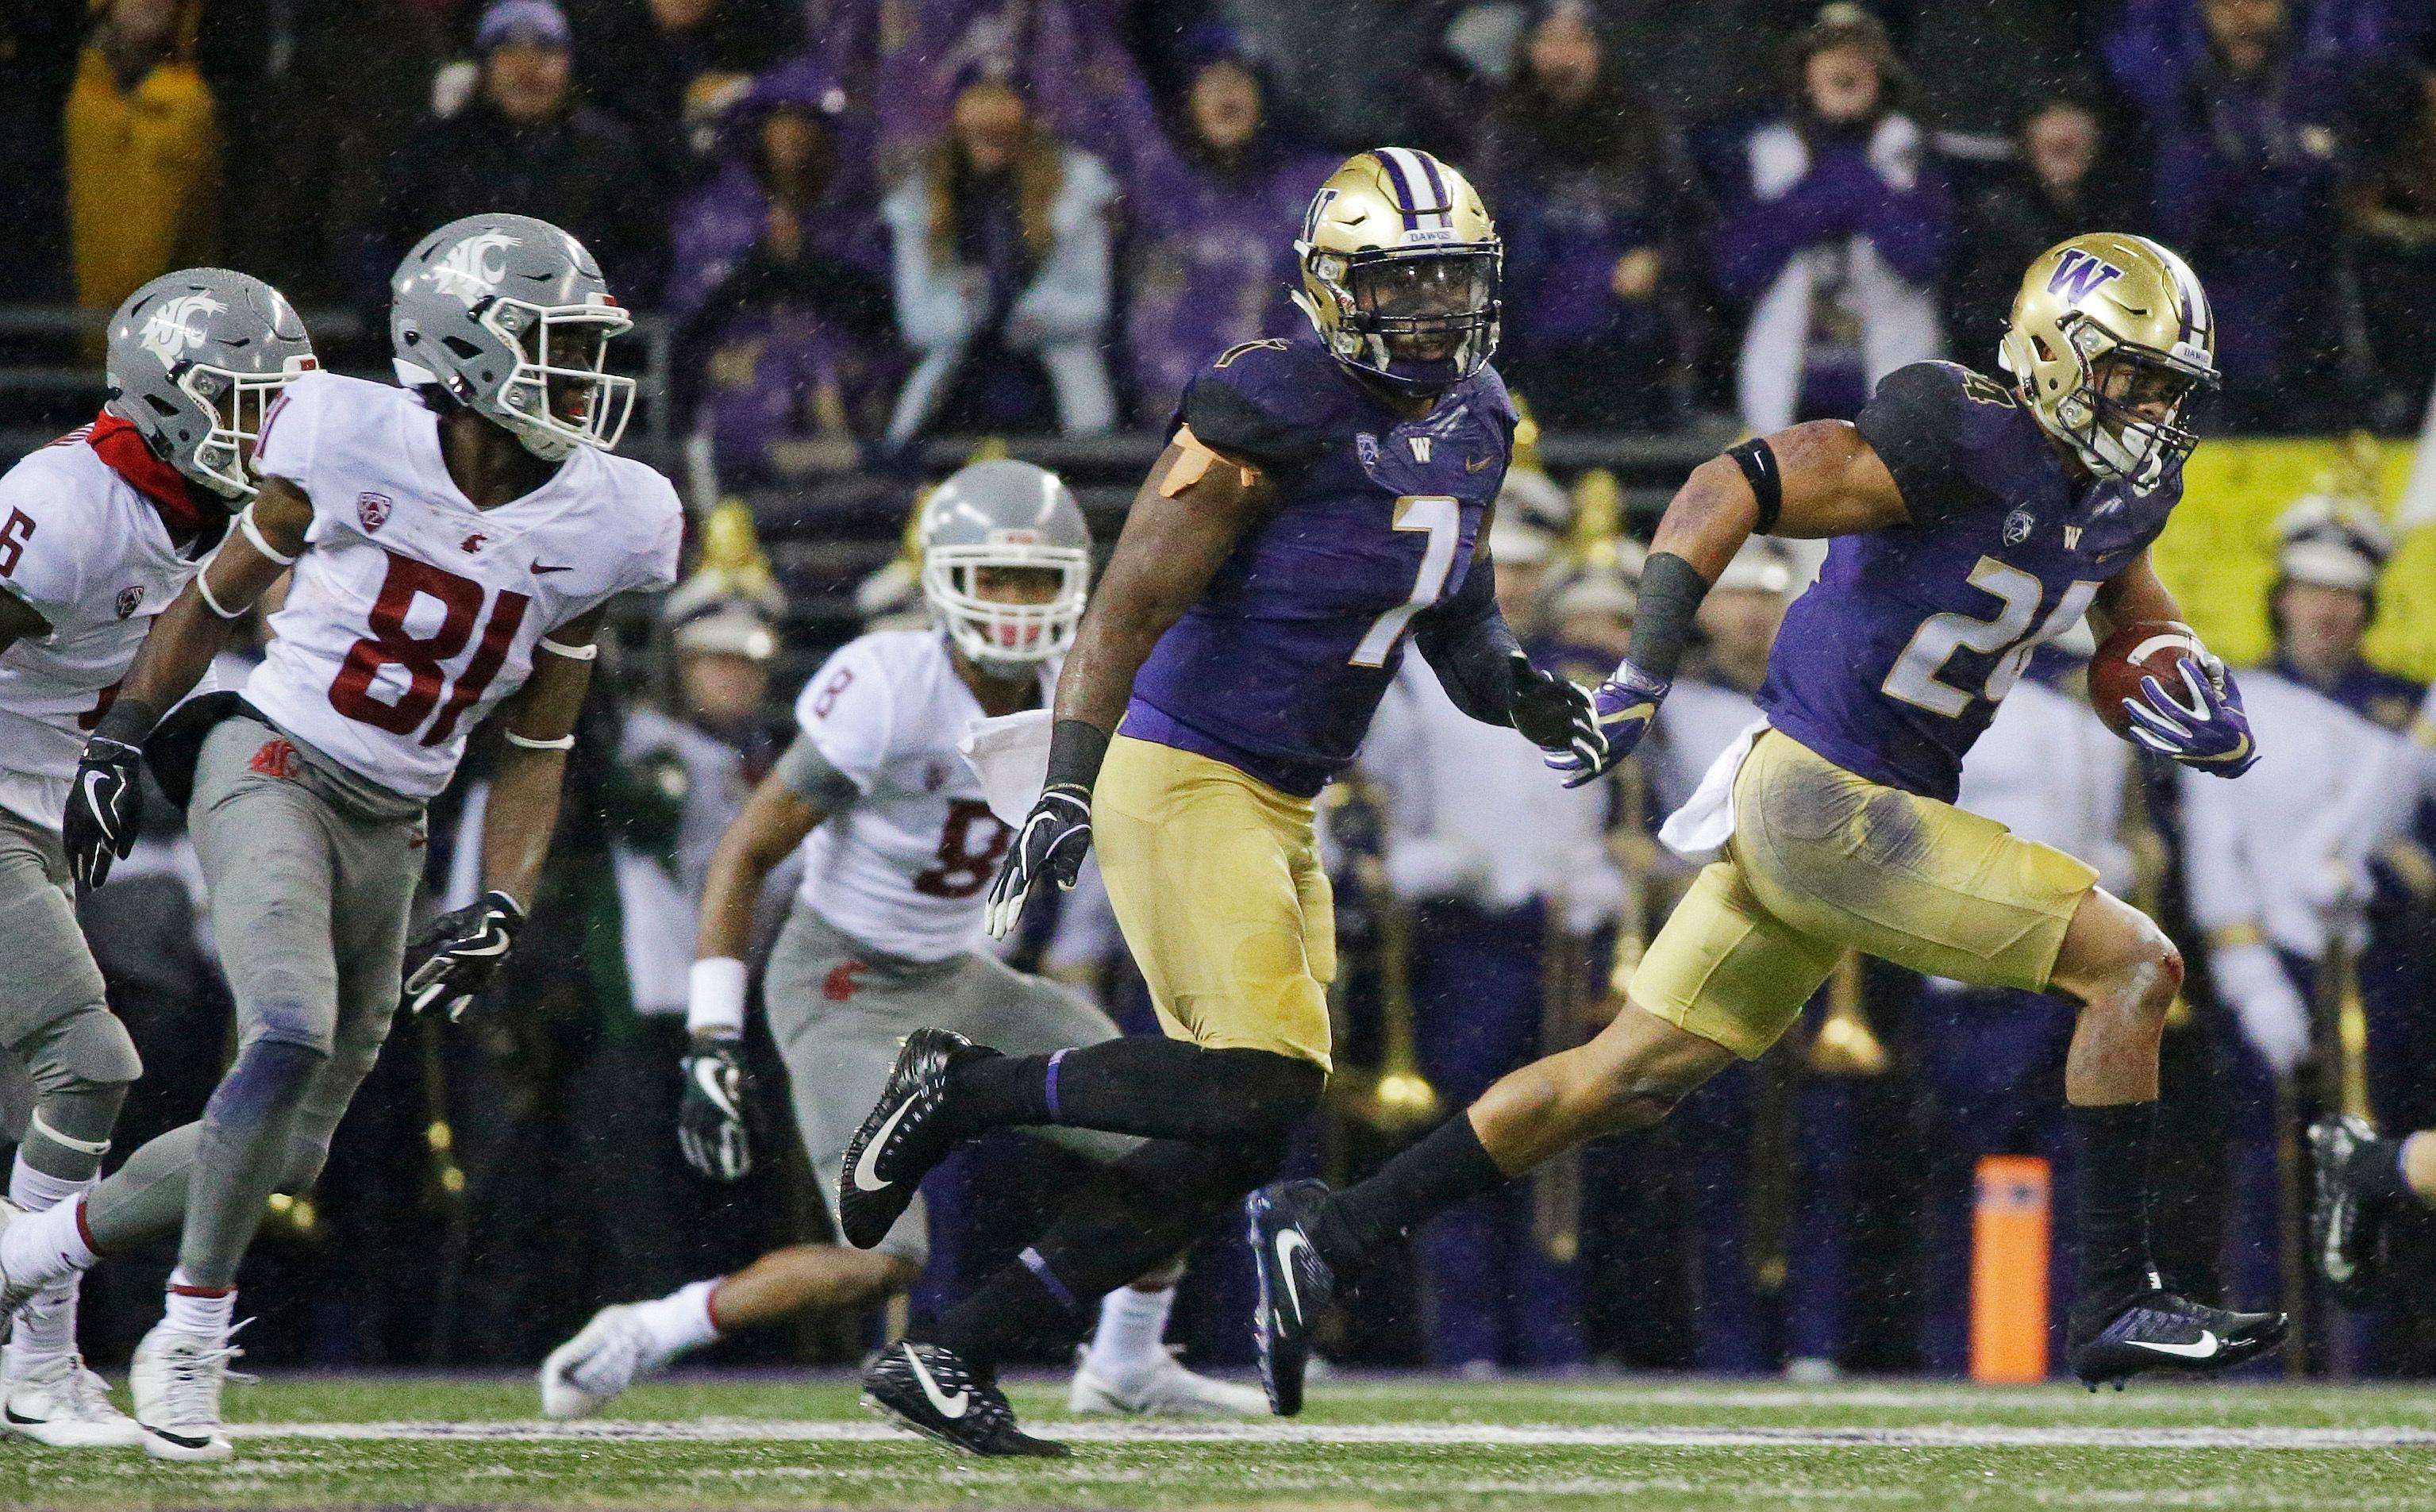 Washington defensive back Ezekiel Turner, right, runs with the ball after he intercepted a Washington State pass during the first half of an NCAA college football game, Saturday, Nov. 25, 2017, in Seattle. (AP Photo/Ted S. Warren)